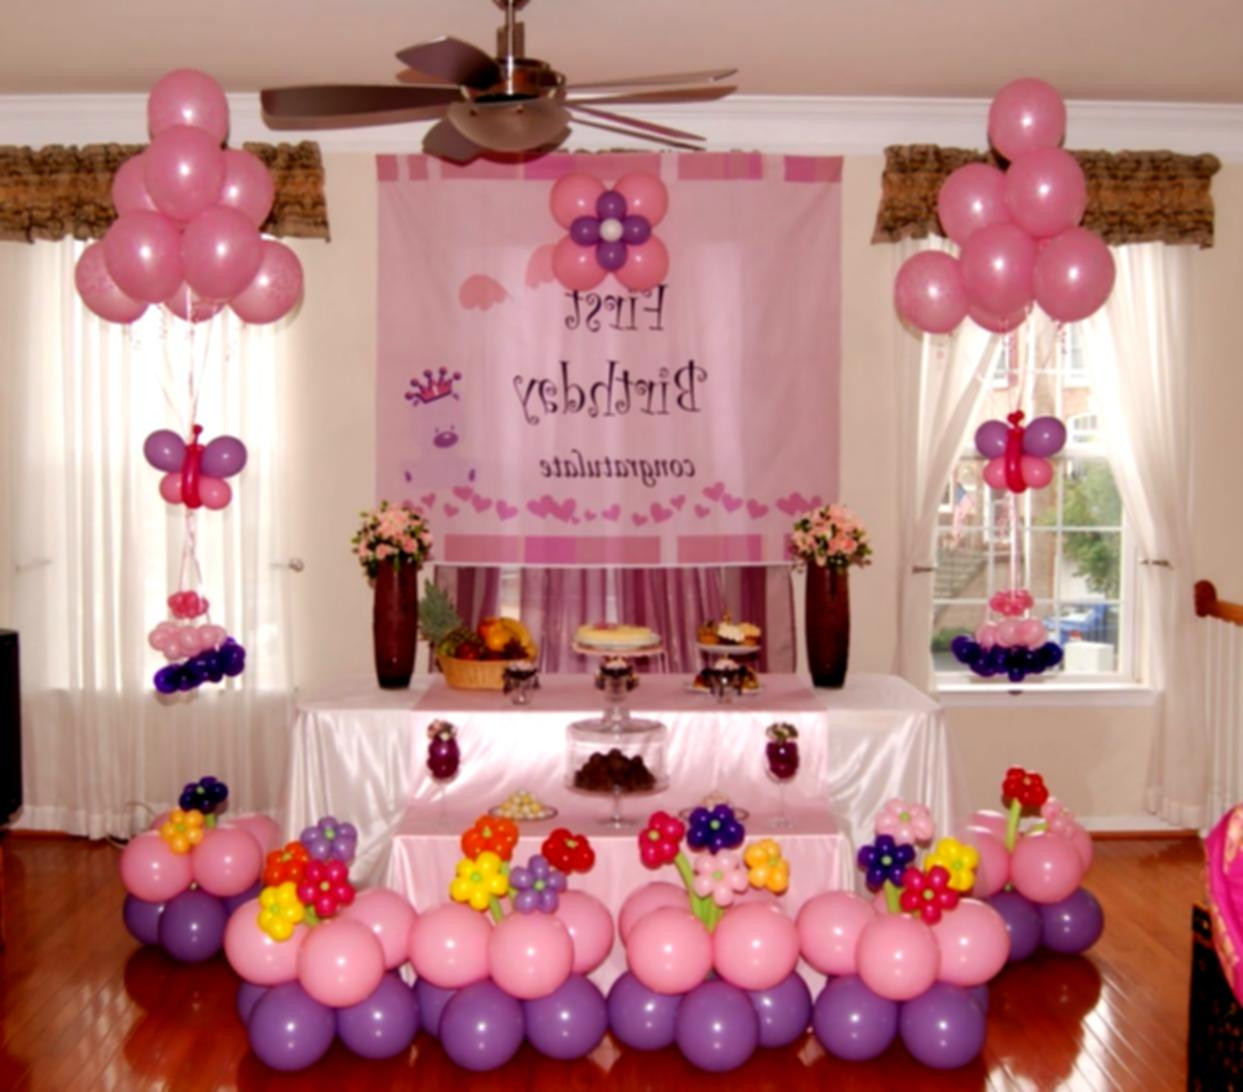 Best ideas about First Birthday Party Decorations . Save or Pin 1st Birthday Decoration Ideas At Home For Party Favor Now.